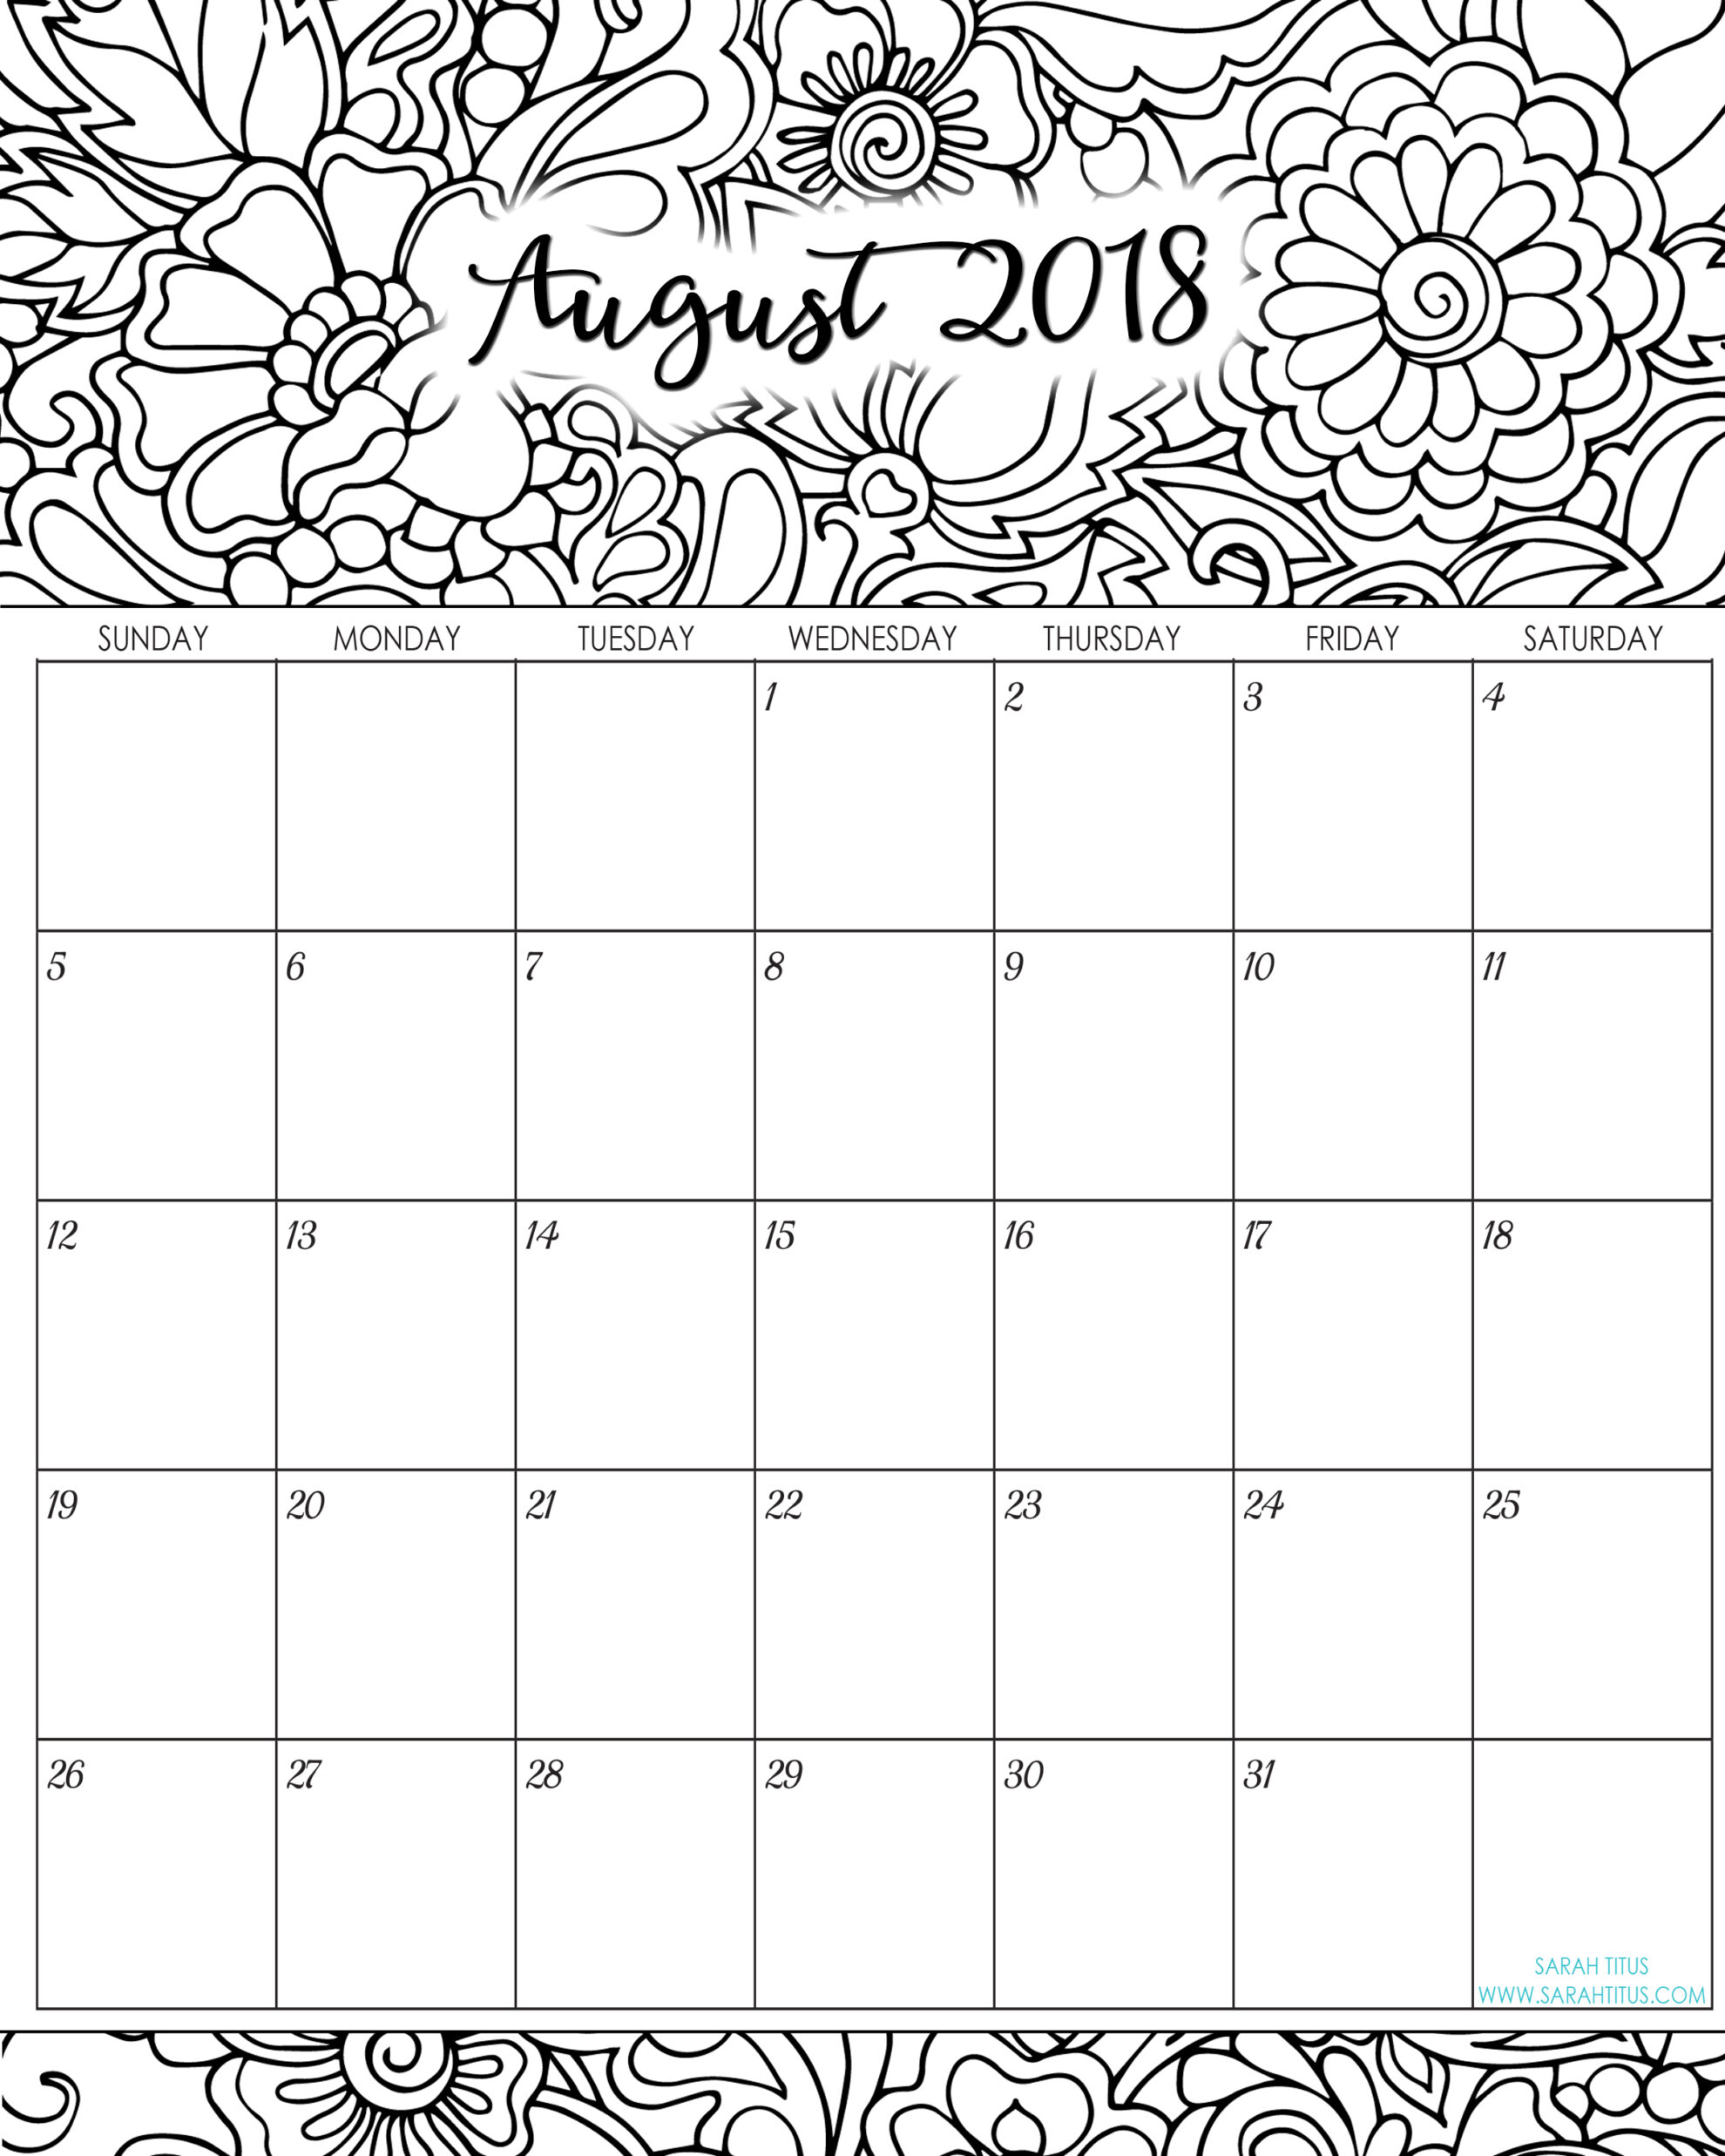 2018 Monthly Coloring Calendars Printables - Sarah Titus